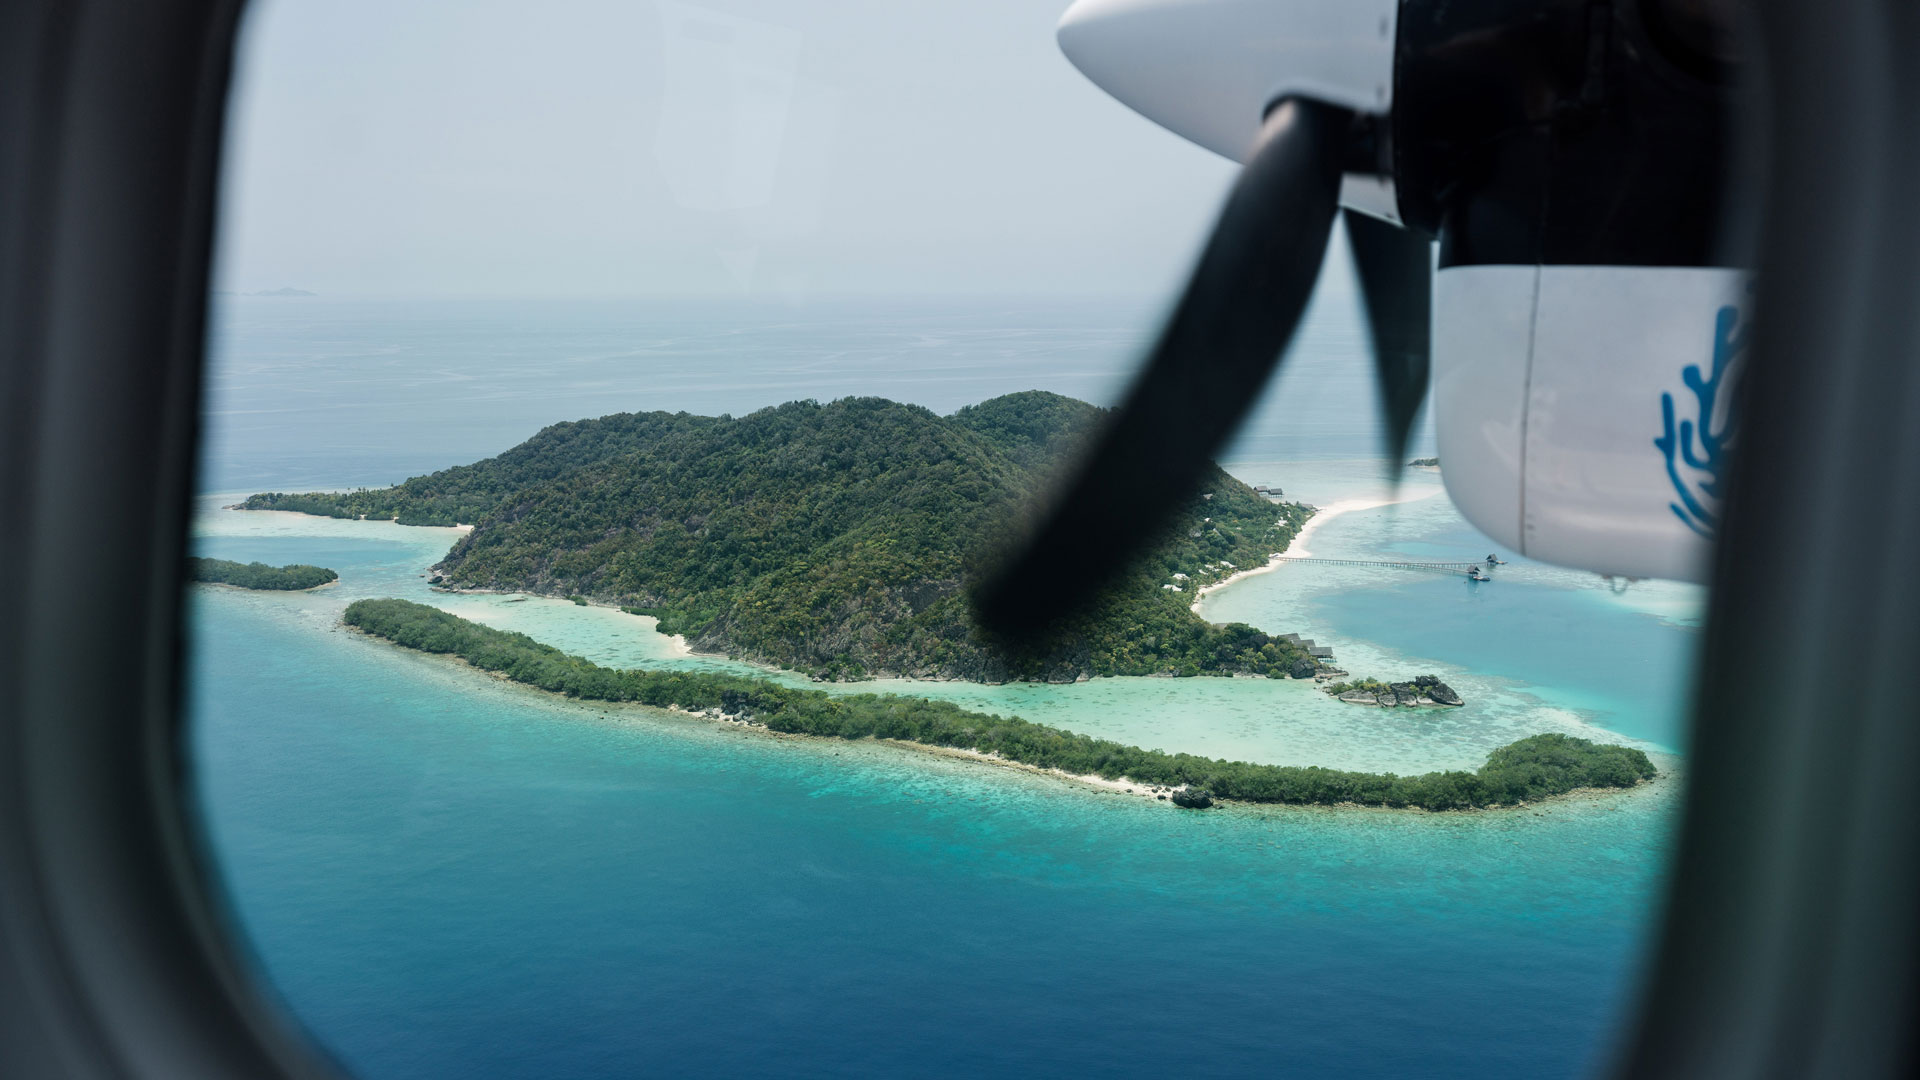 Bawahreserve_view_from_seaplane_zoom